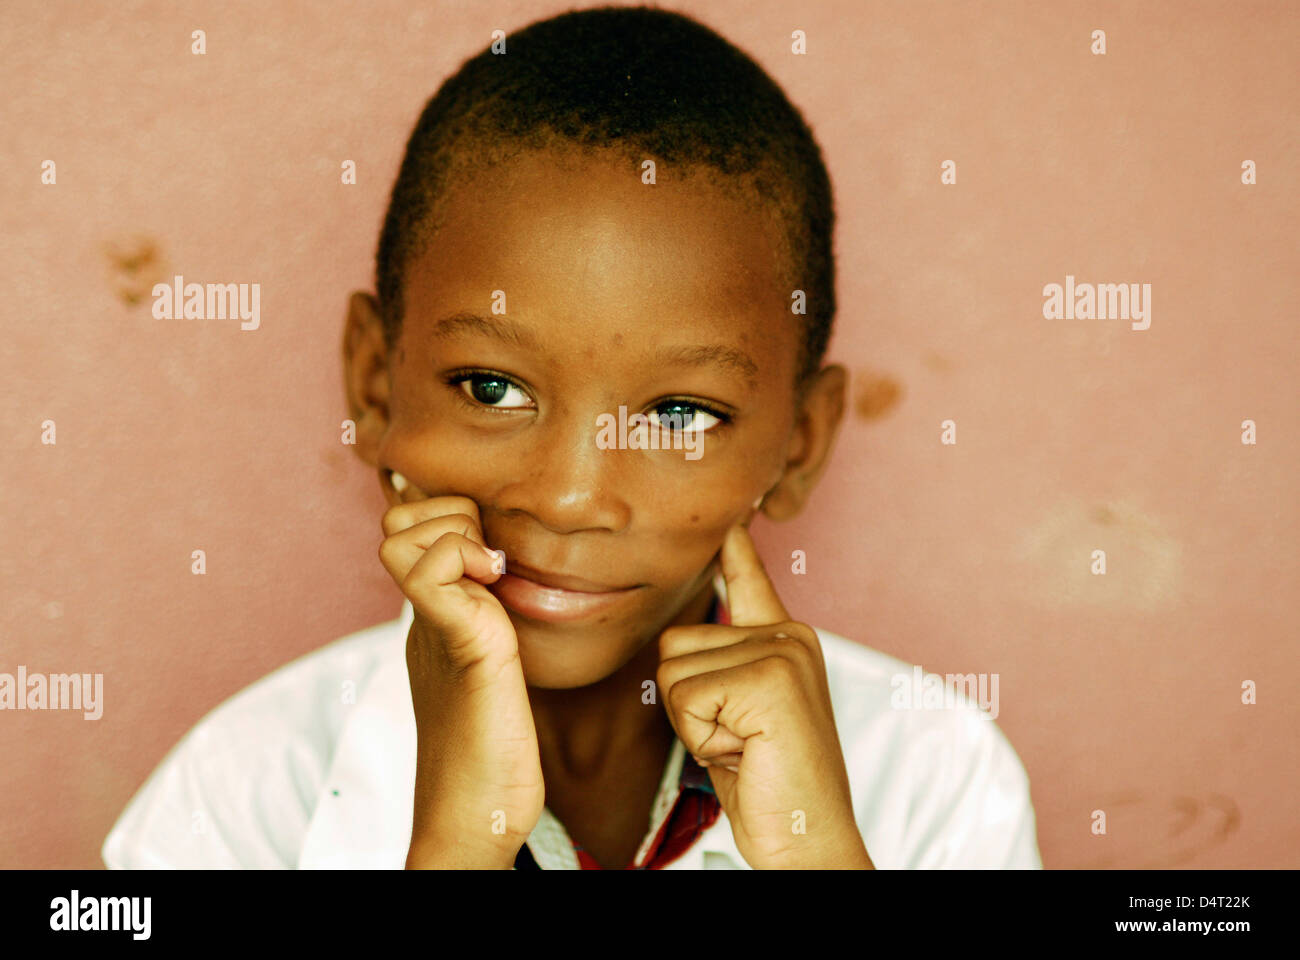 Africa, Angola, Luanda, close-up portrait of an African boy in a white shirt smiling in front of a wall. (MR) - Stock Image